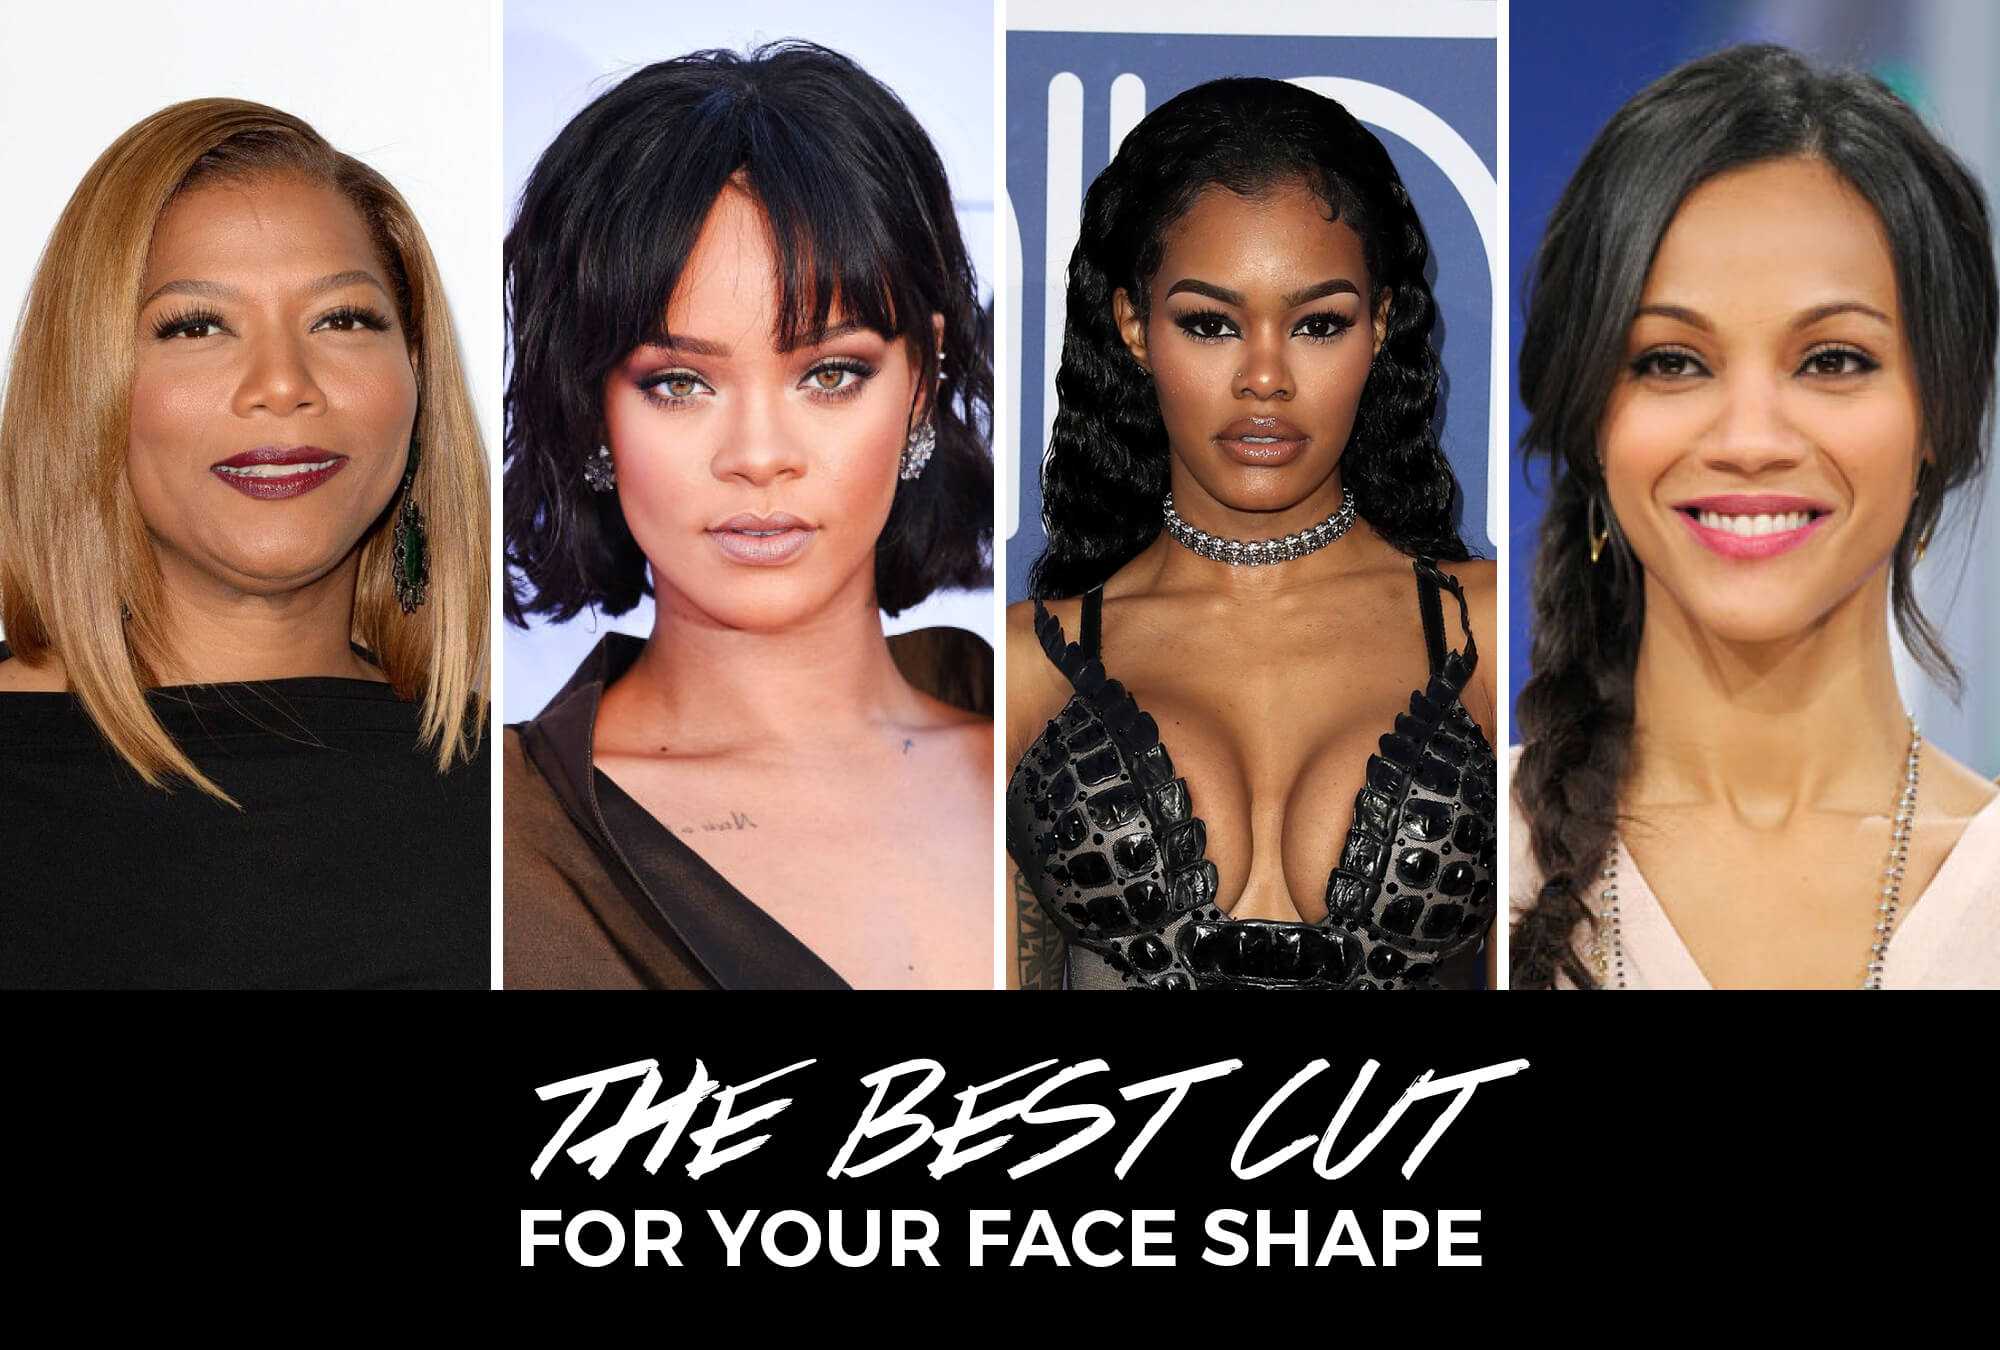 Own Your Angles: The Best Haircut For Your Face Shape